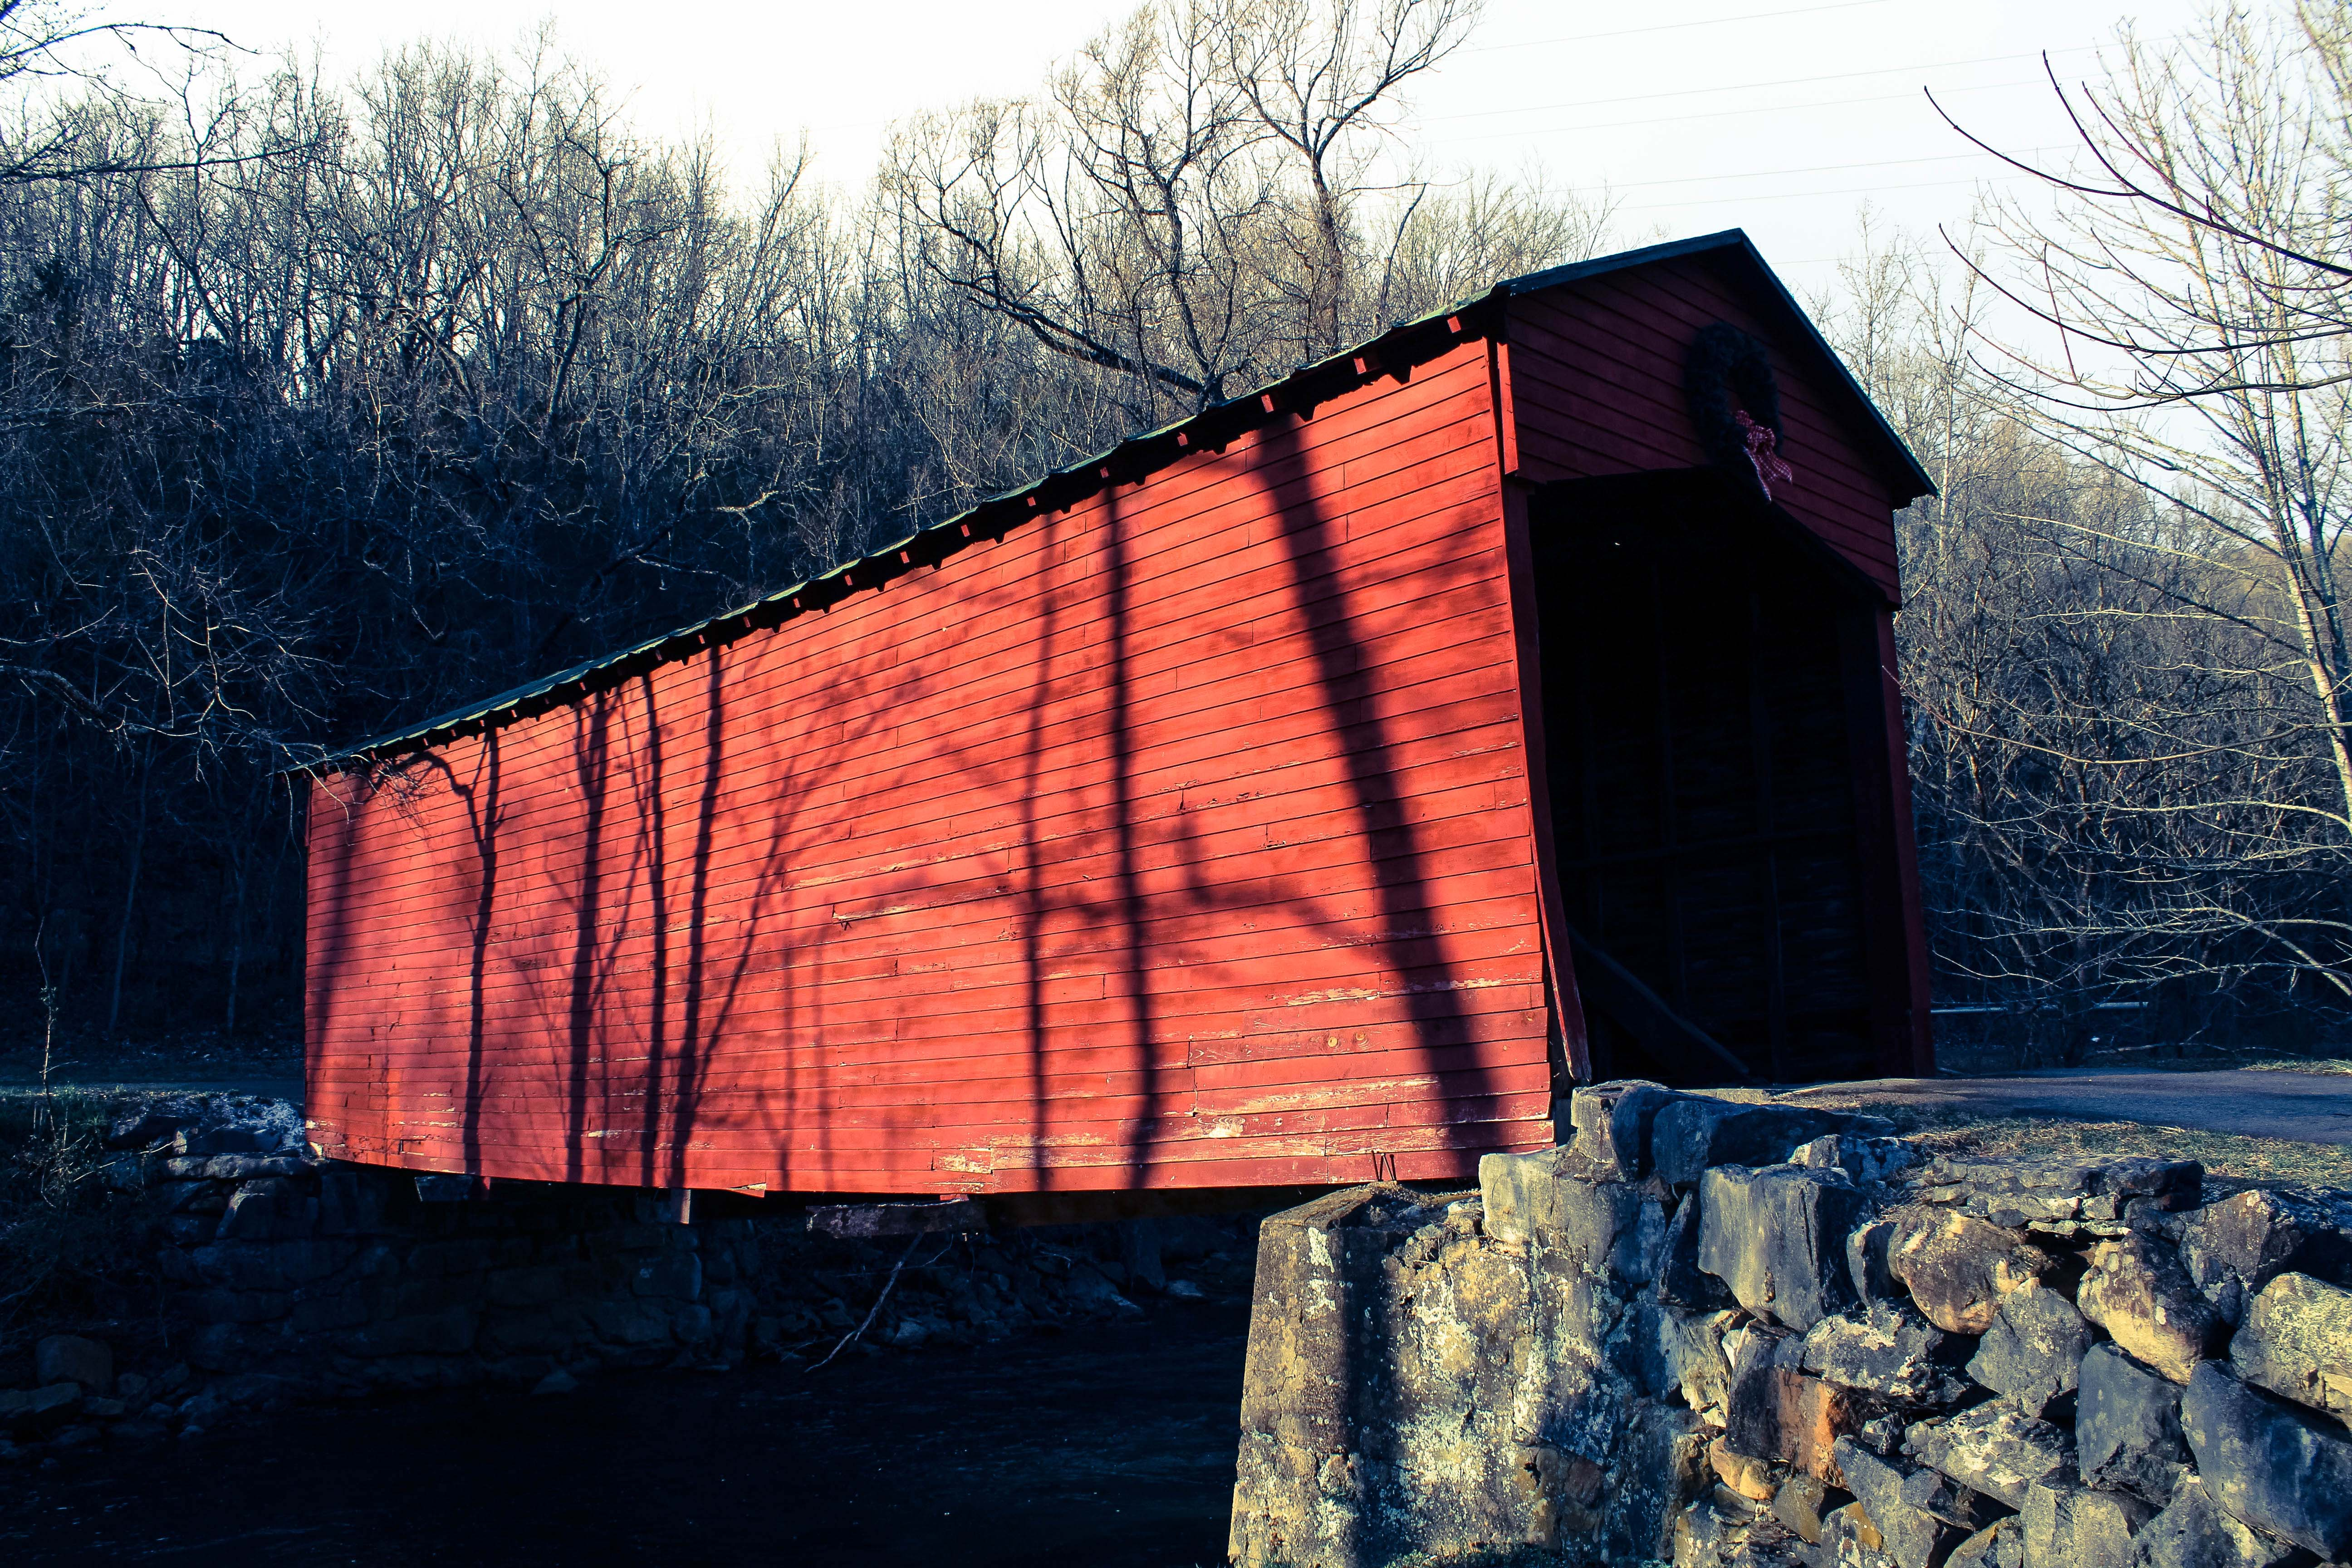 Covered bridge with shadows of trees.